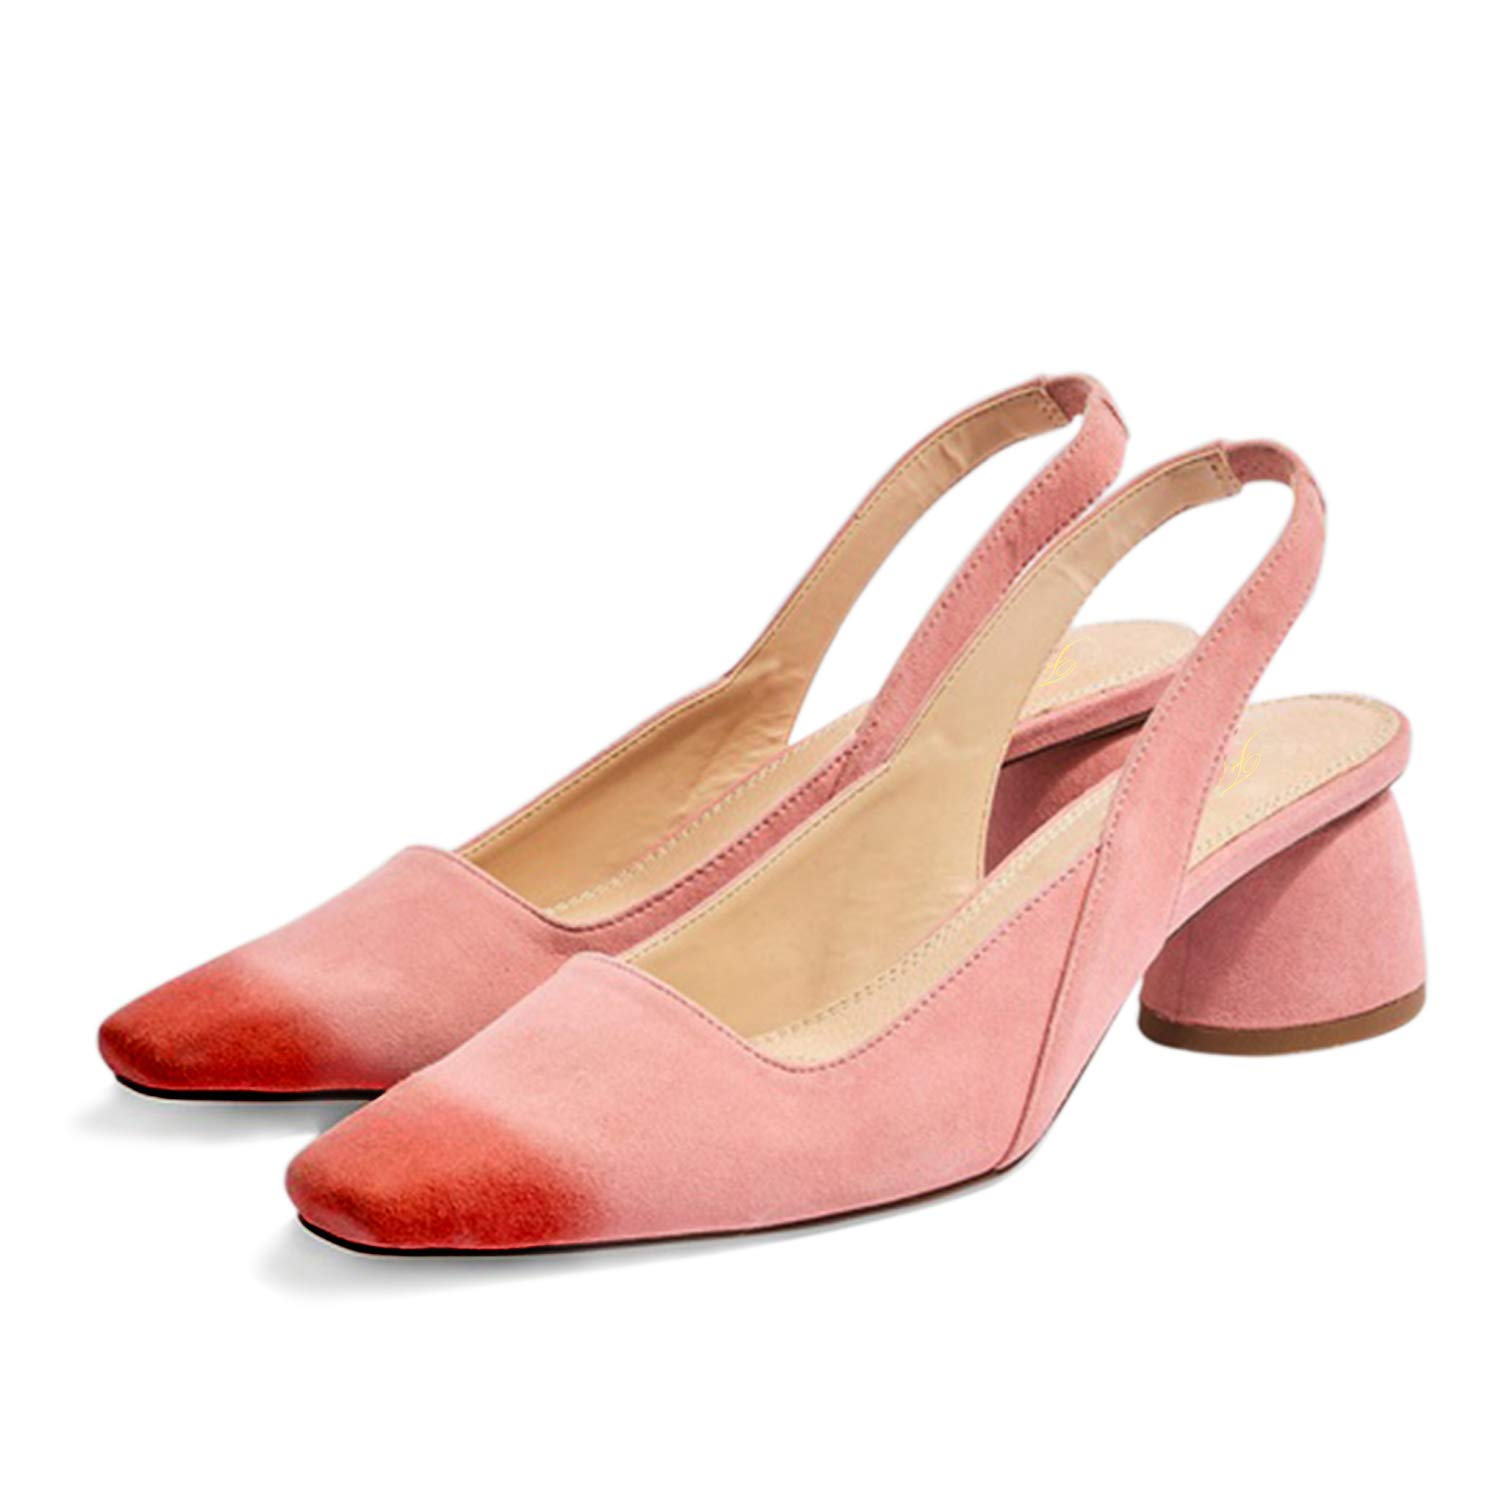 FOWT Slingback Strap Mules Shoes for Women with Square Toe Scarlet Burnished,Mid Rounded Block Heel Sandals with Elastic Band Mature Rose Pink Lady Casual Summer Dress Walking 4-16 M US